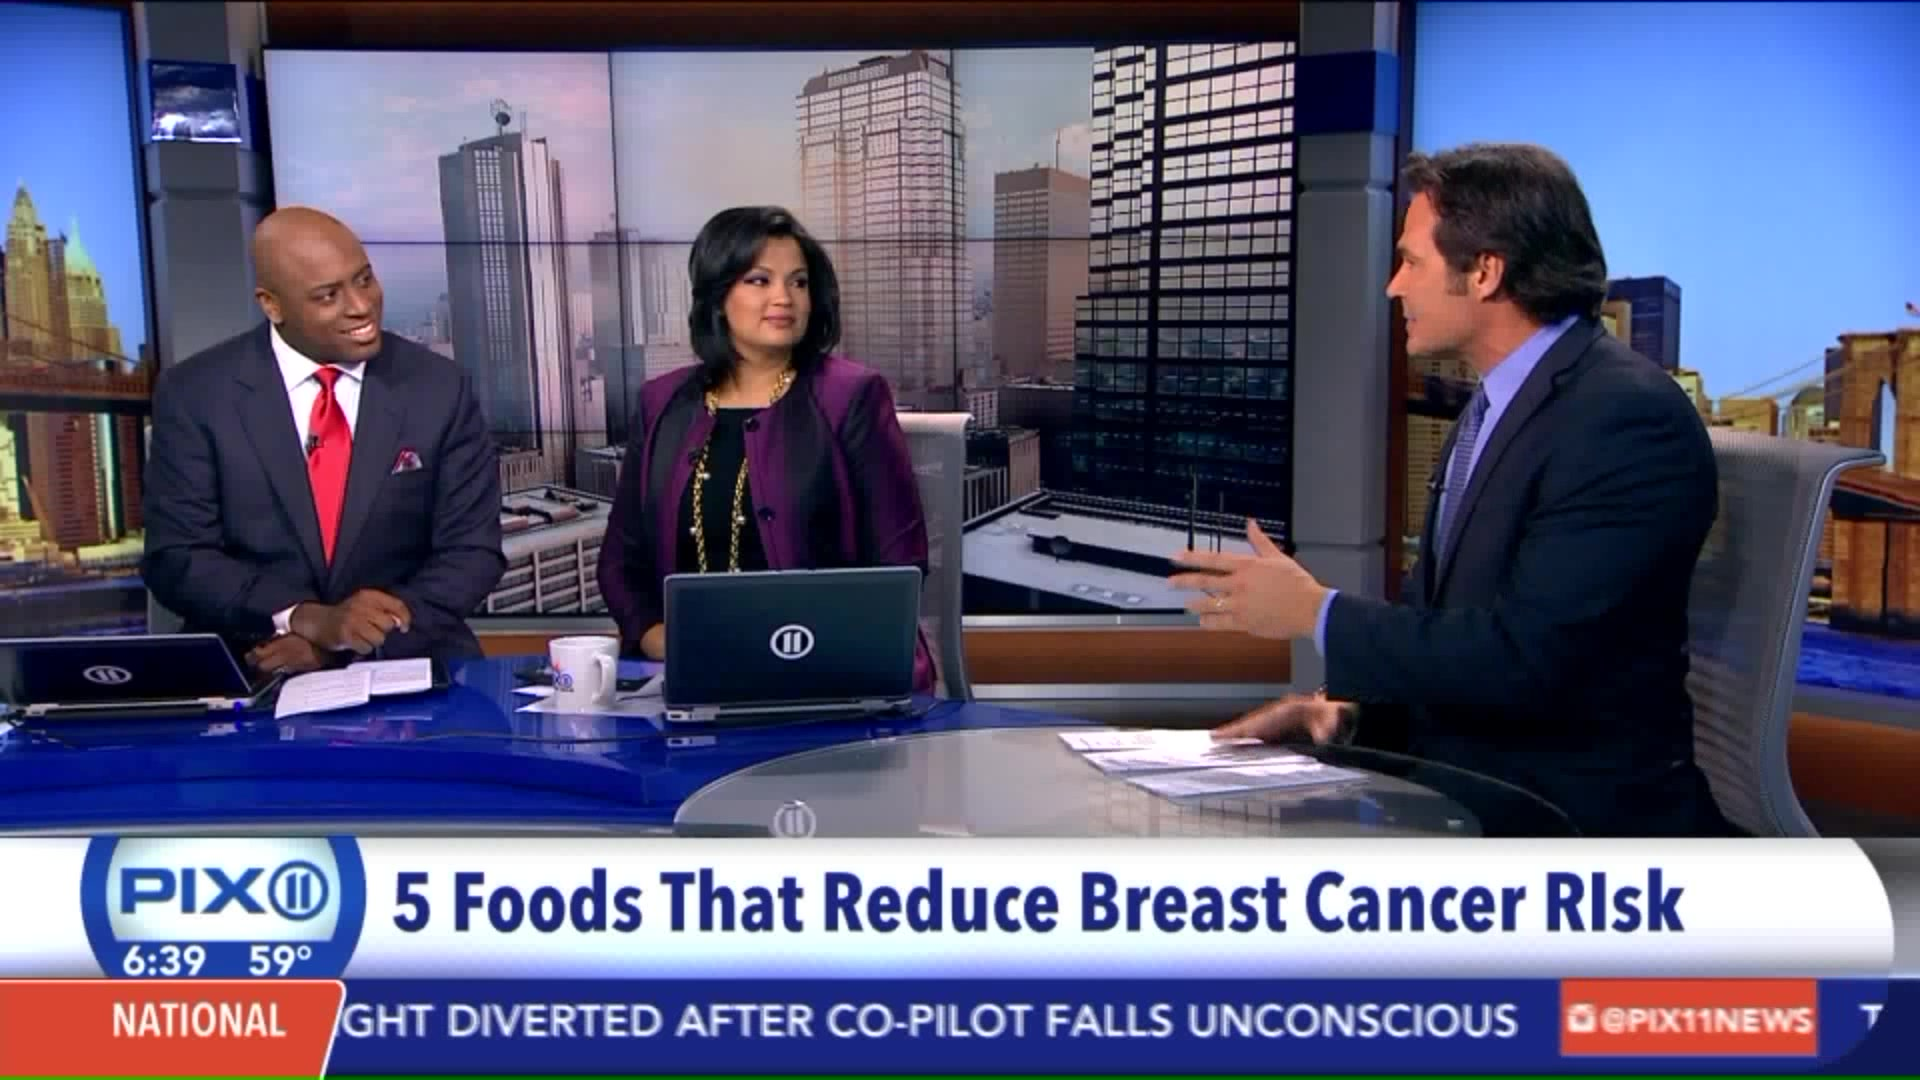 5 Foods That Can Reduce the Risk of Breast Cancer